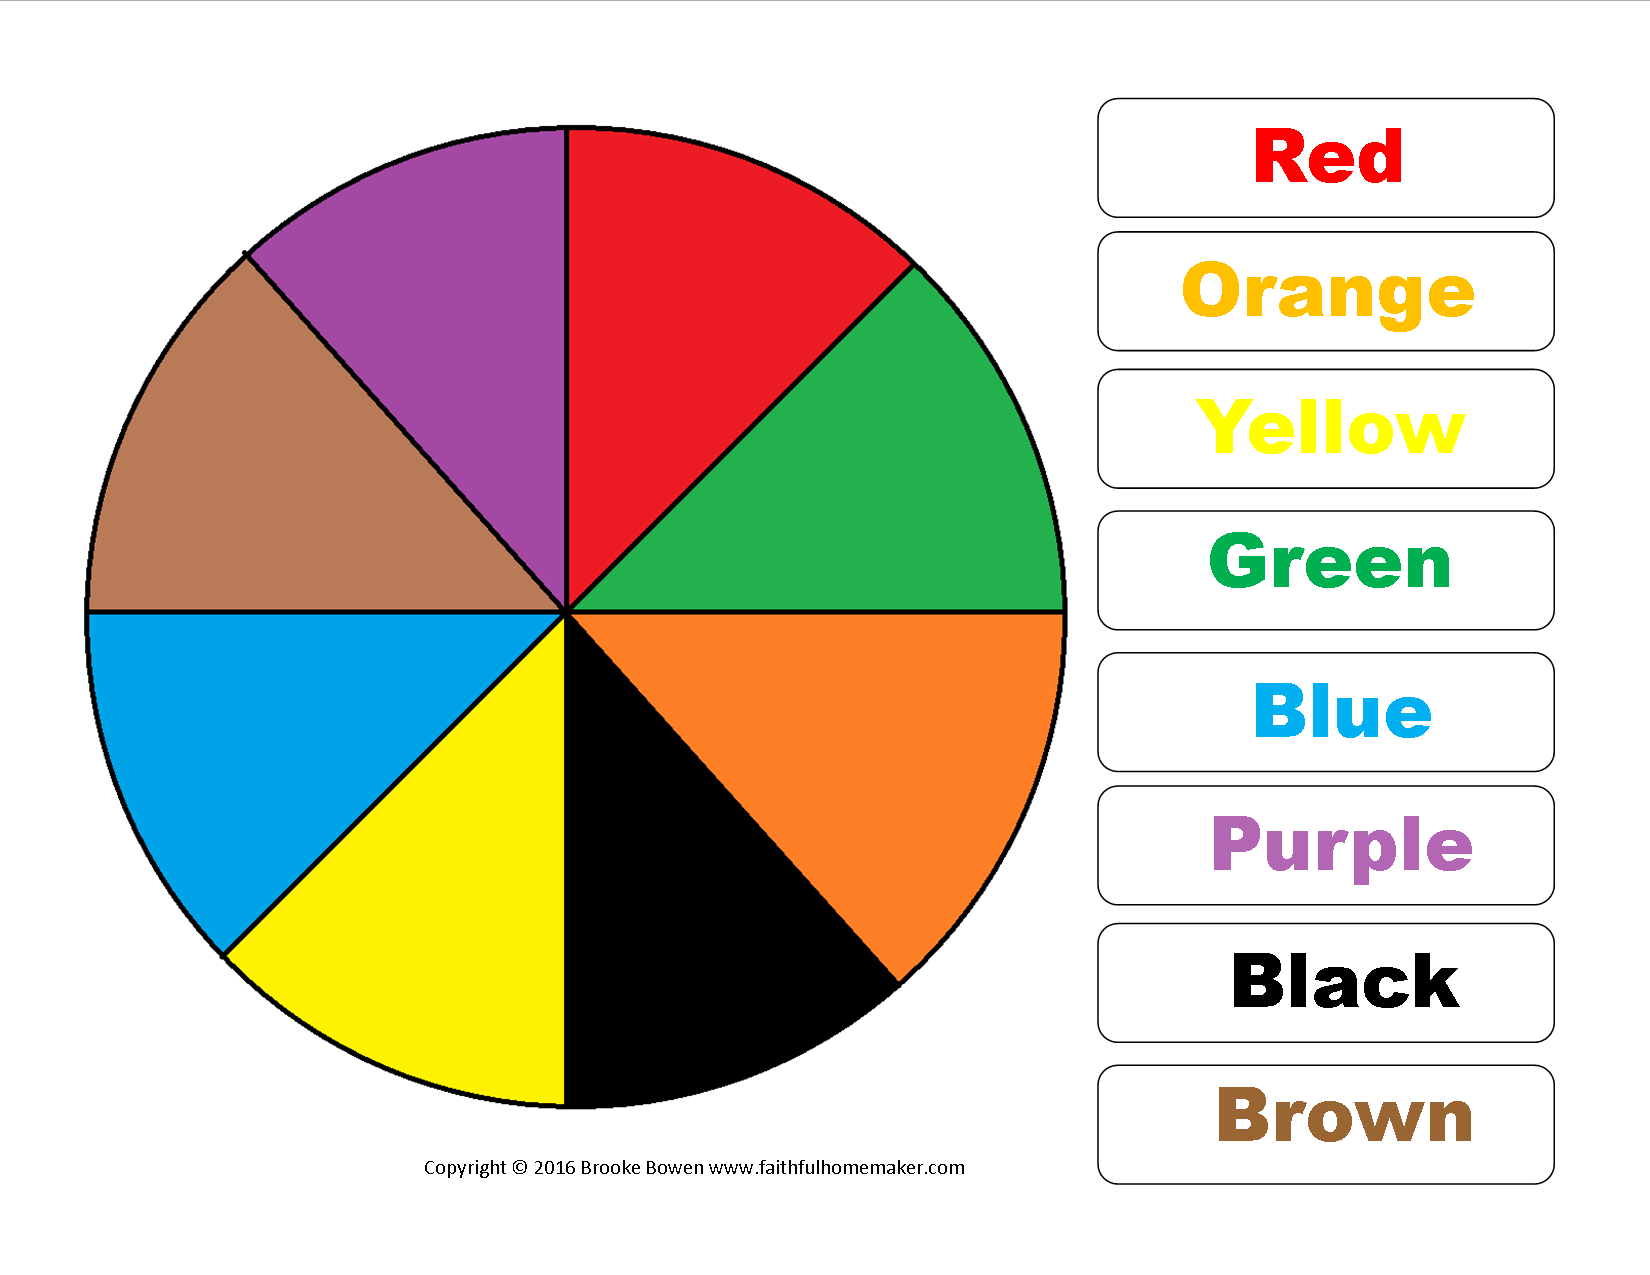 graphic about Color Wheel Printable referred to as Cost-free Printable: Coloration Wheel The Devoted Homemaker